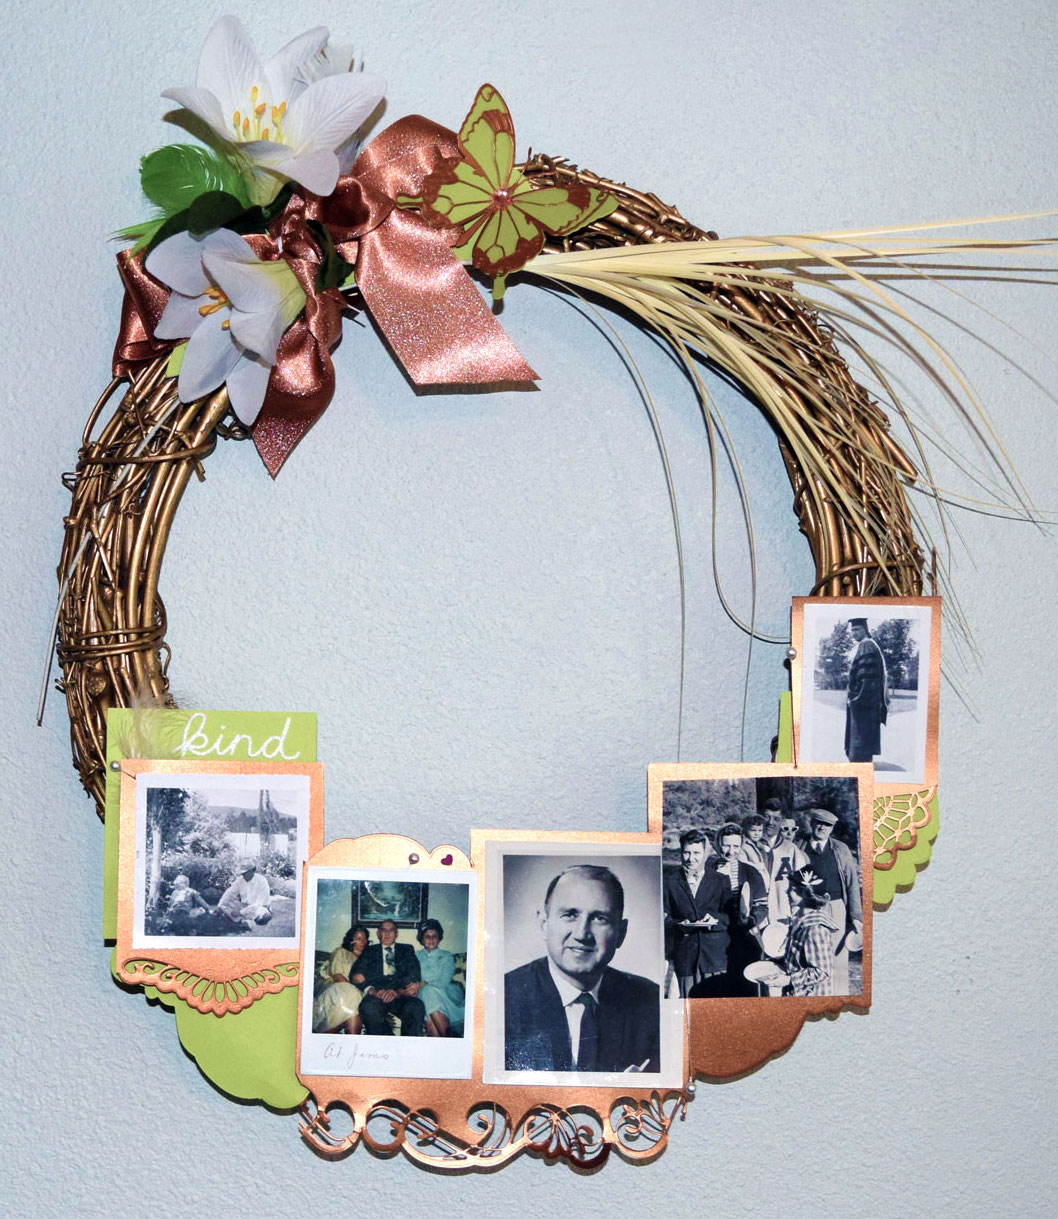 PaperPapersFamilyWreath01 creative wreath expressing the love we have for our family - PaperPapersFamilyWreath01 - Creative Wreath Expressing the Love we have for our Family